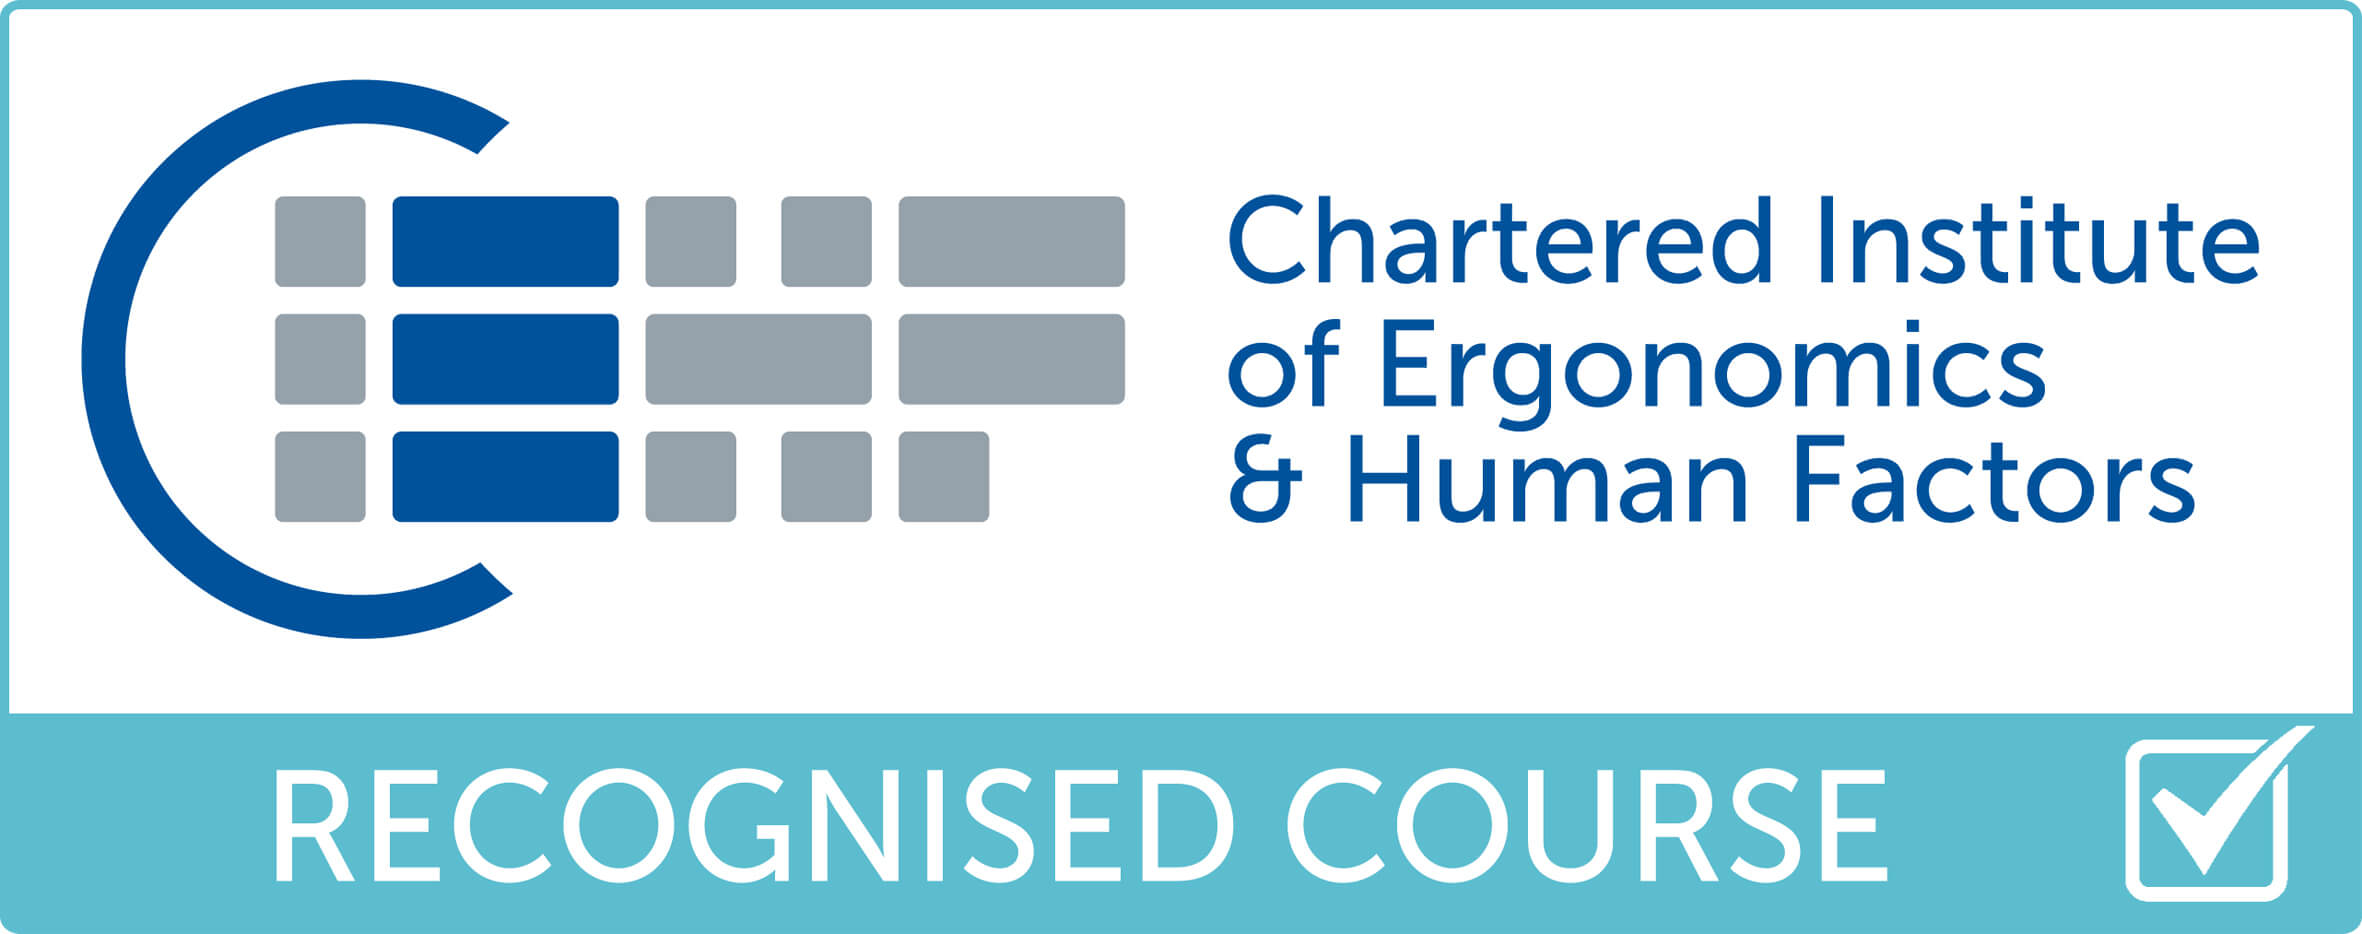 Chartered Institute of Ergonomics and Human Factors (CIEHF)